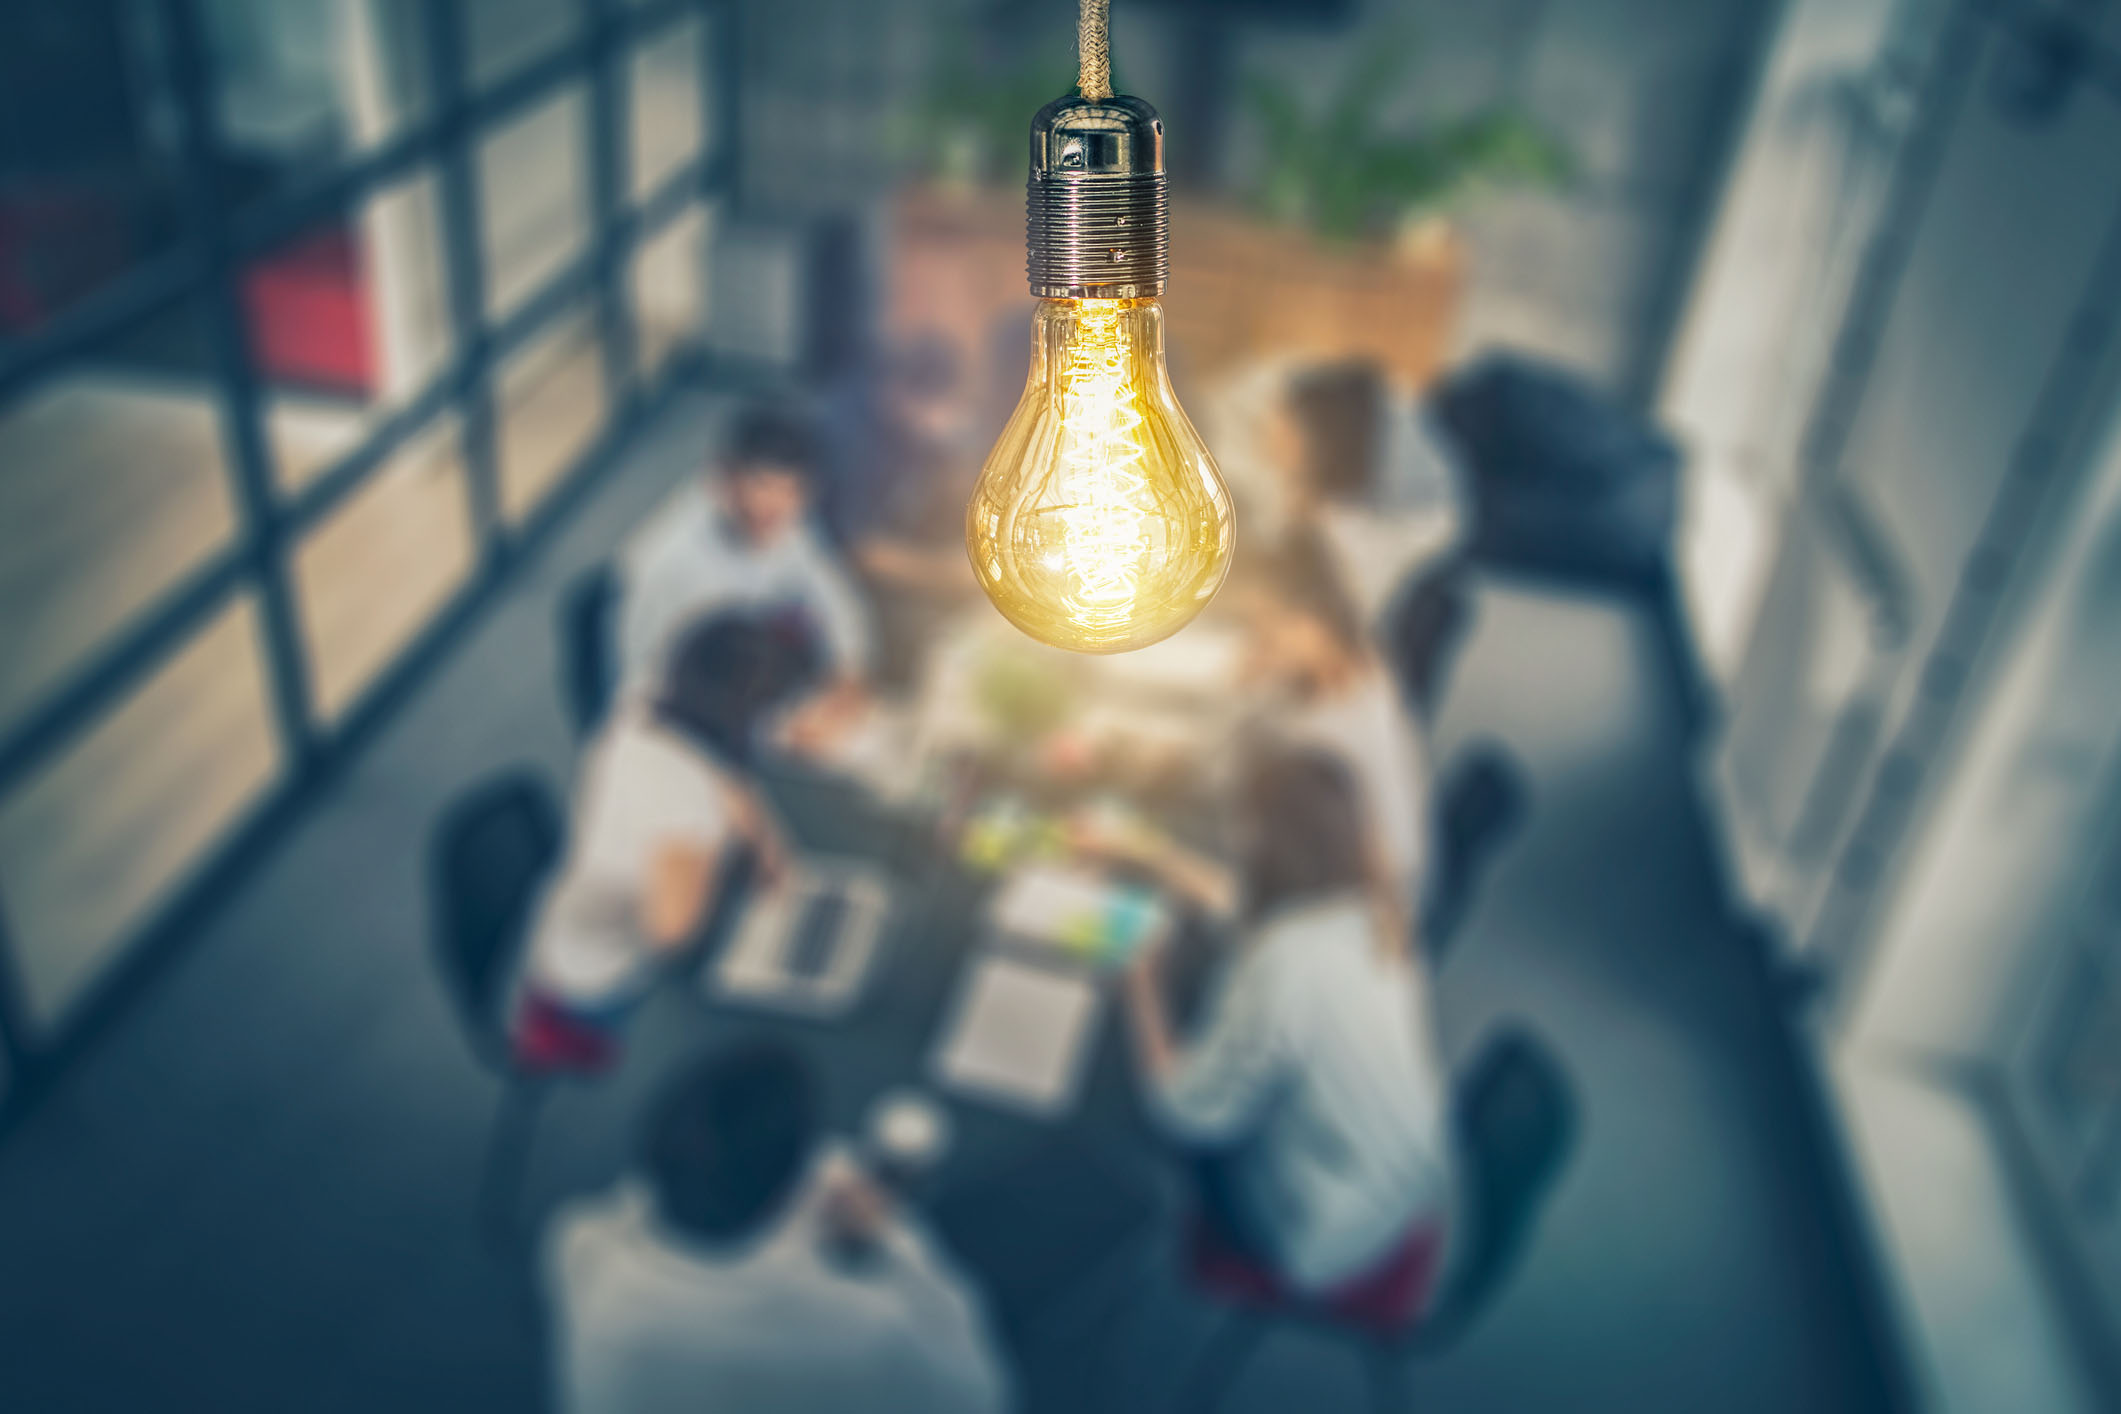 image of a lit bulb on top of a table at which entpreneurs are seated at